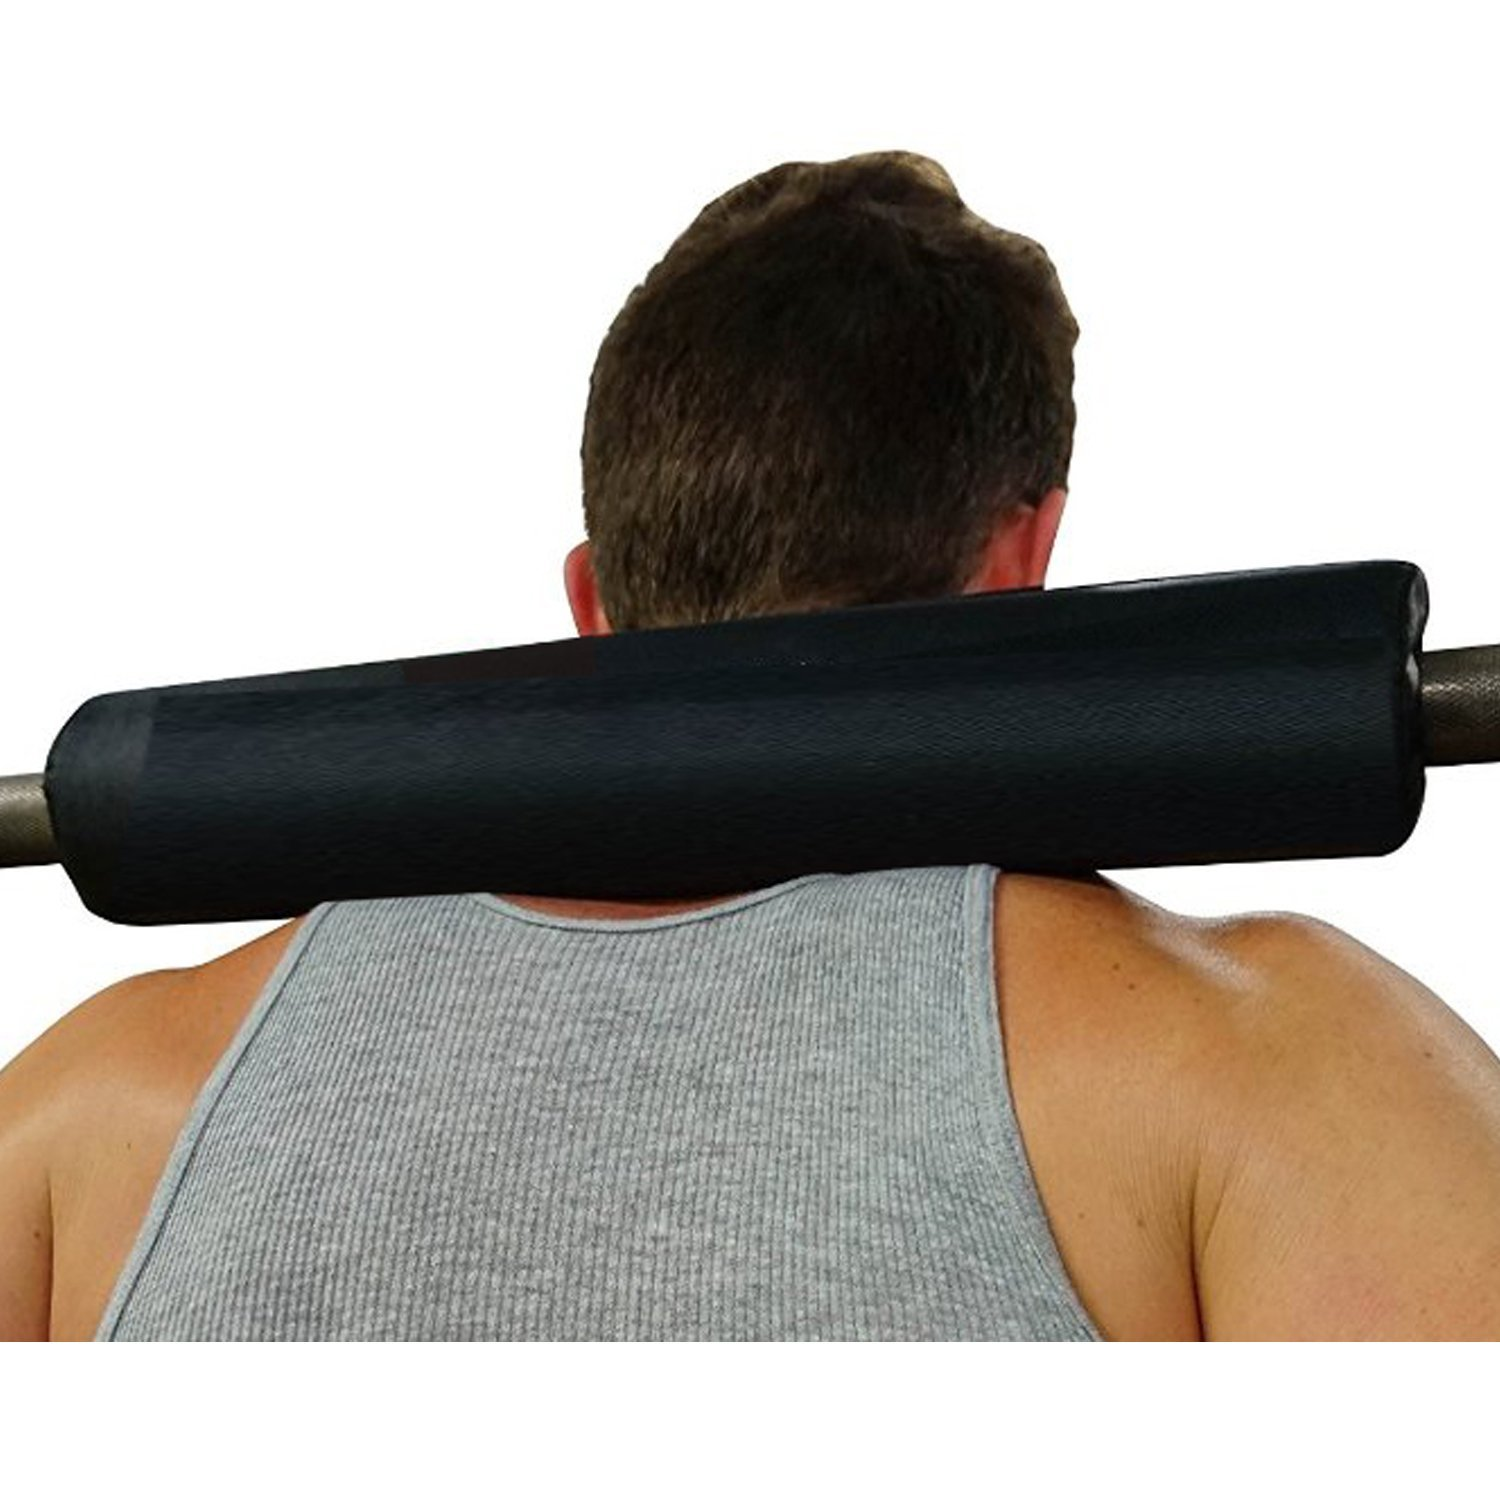 Dark Iron Fitness 15 Inch Extra Thick Barbell Neck Pad – Shoulder Support for Weight Lifting Crossfit Powerlifting and…